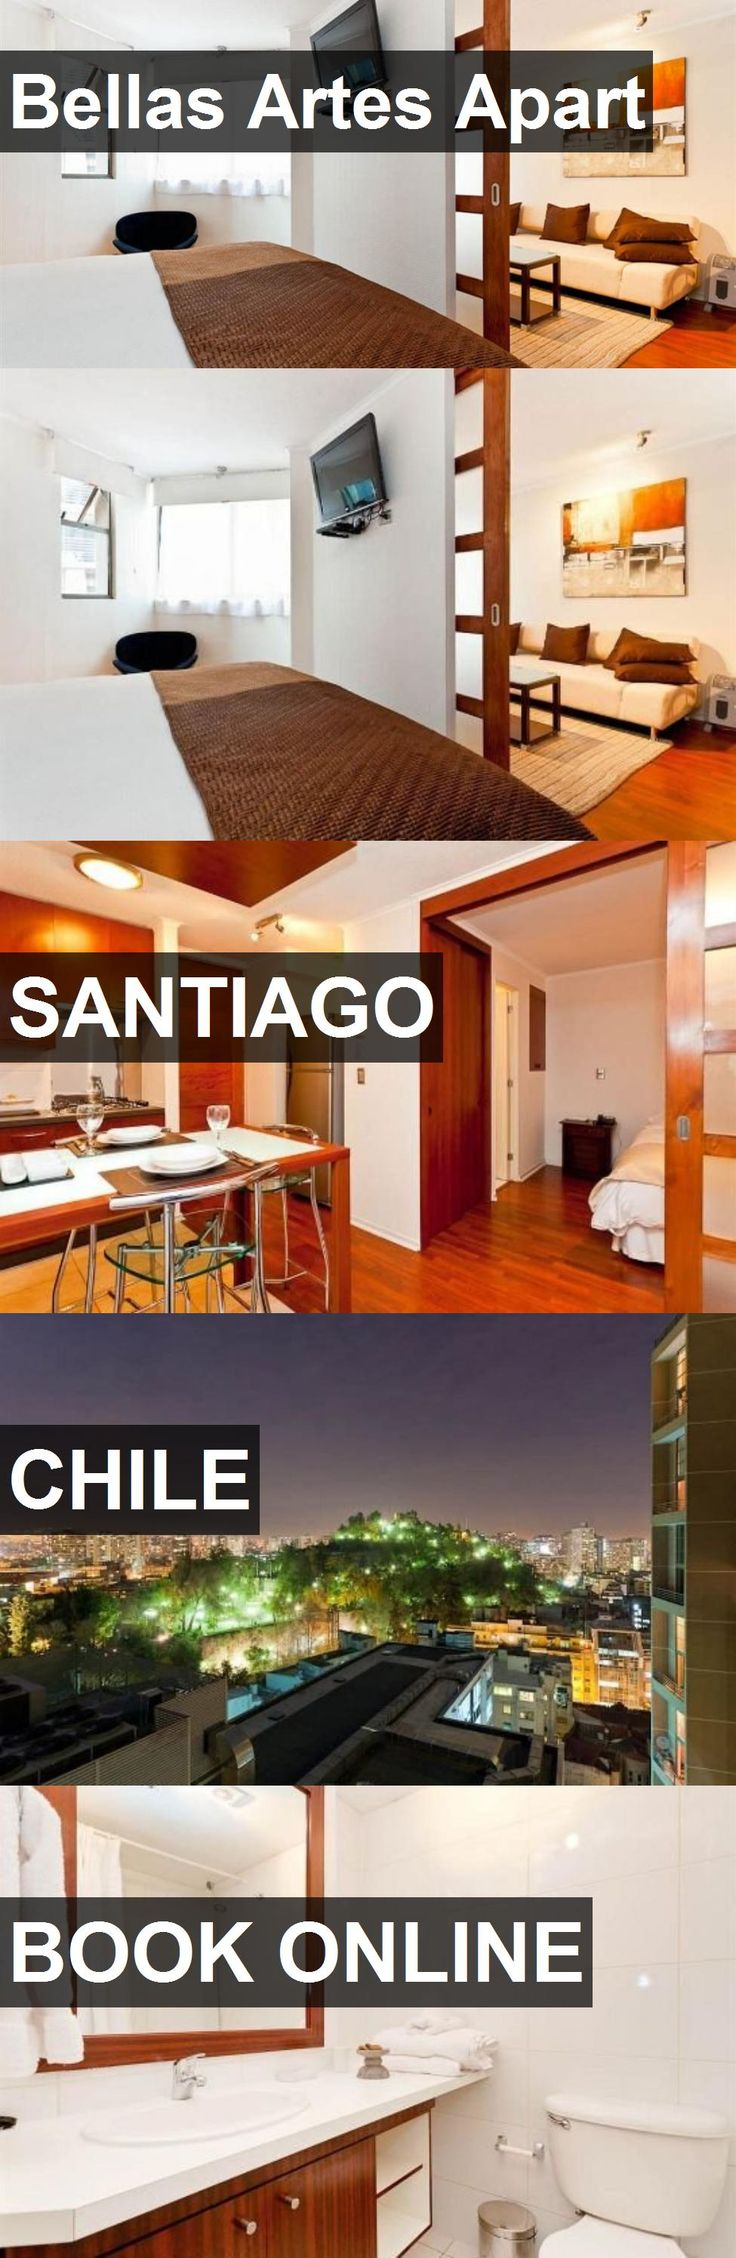 Hotel Bellas Artes Apart in Santiago, Chile. For more information, photos, reviews and best prices please follow the link. #Chile #Santiago #travel #vacation #hotel